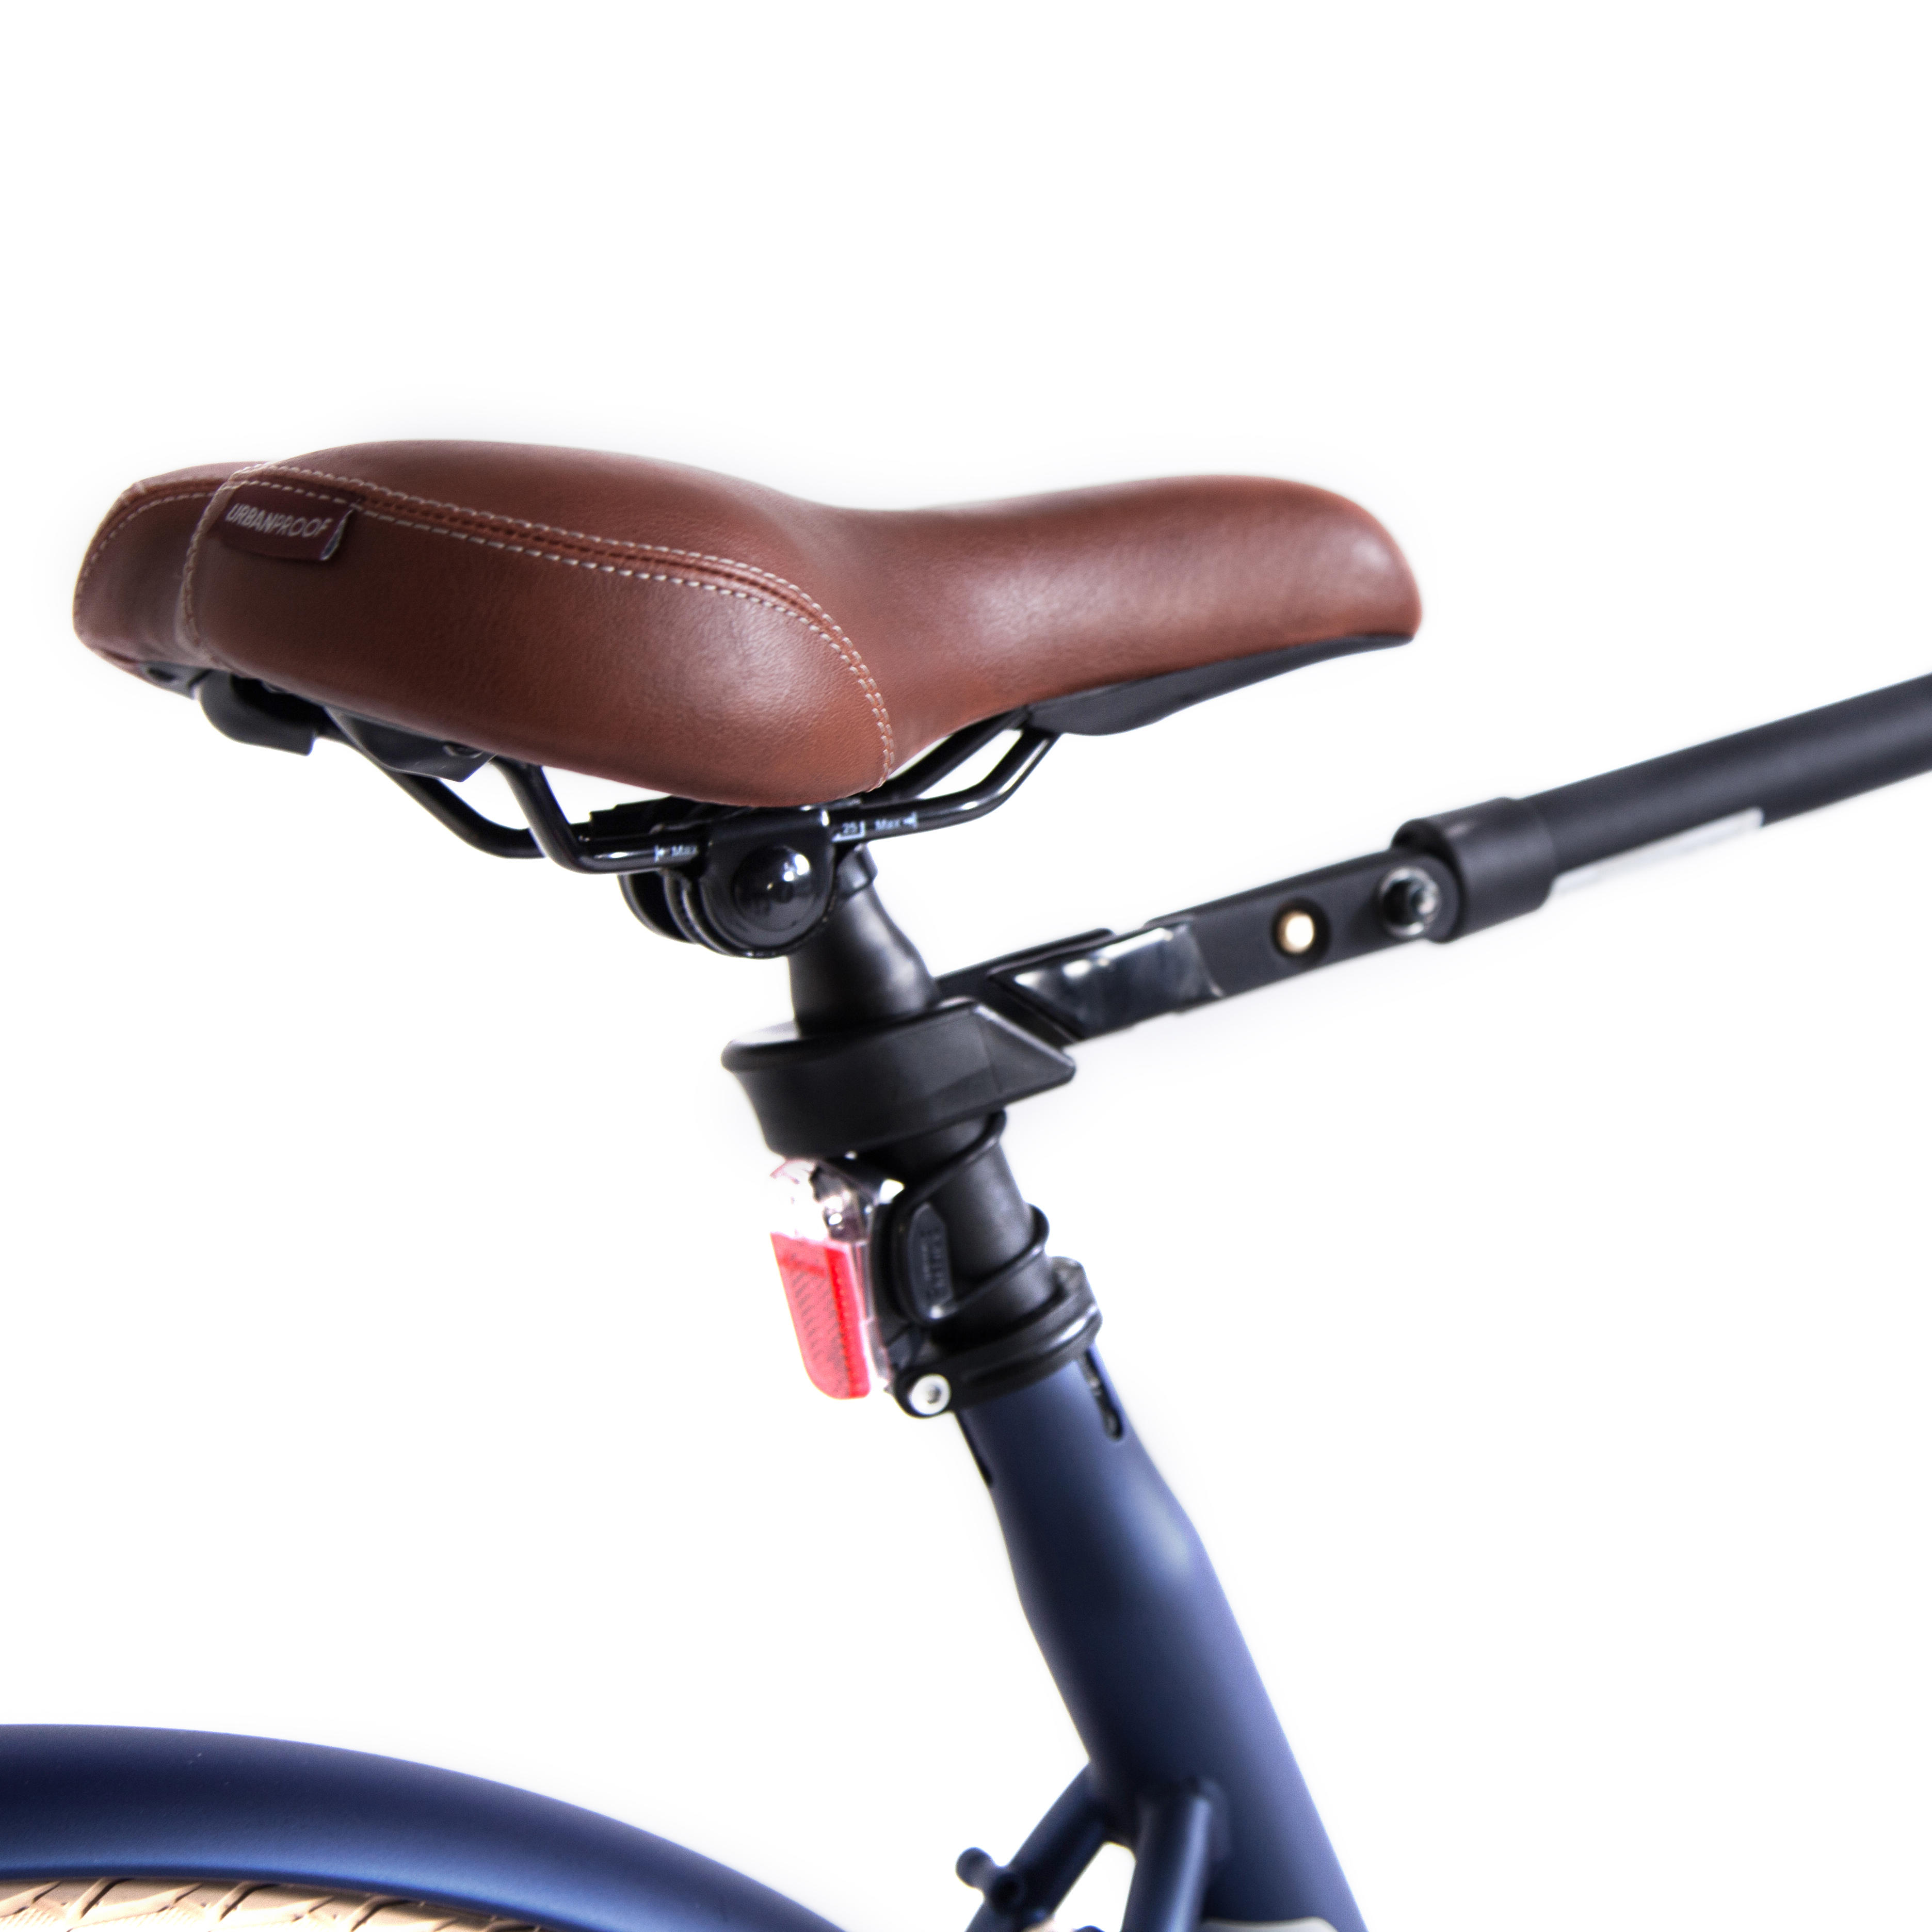 Bike Frame Adaptor For Cycle Carrier